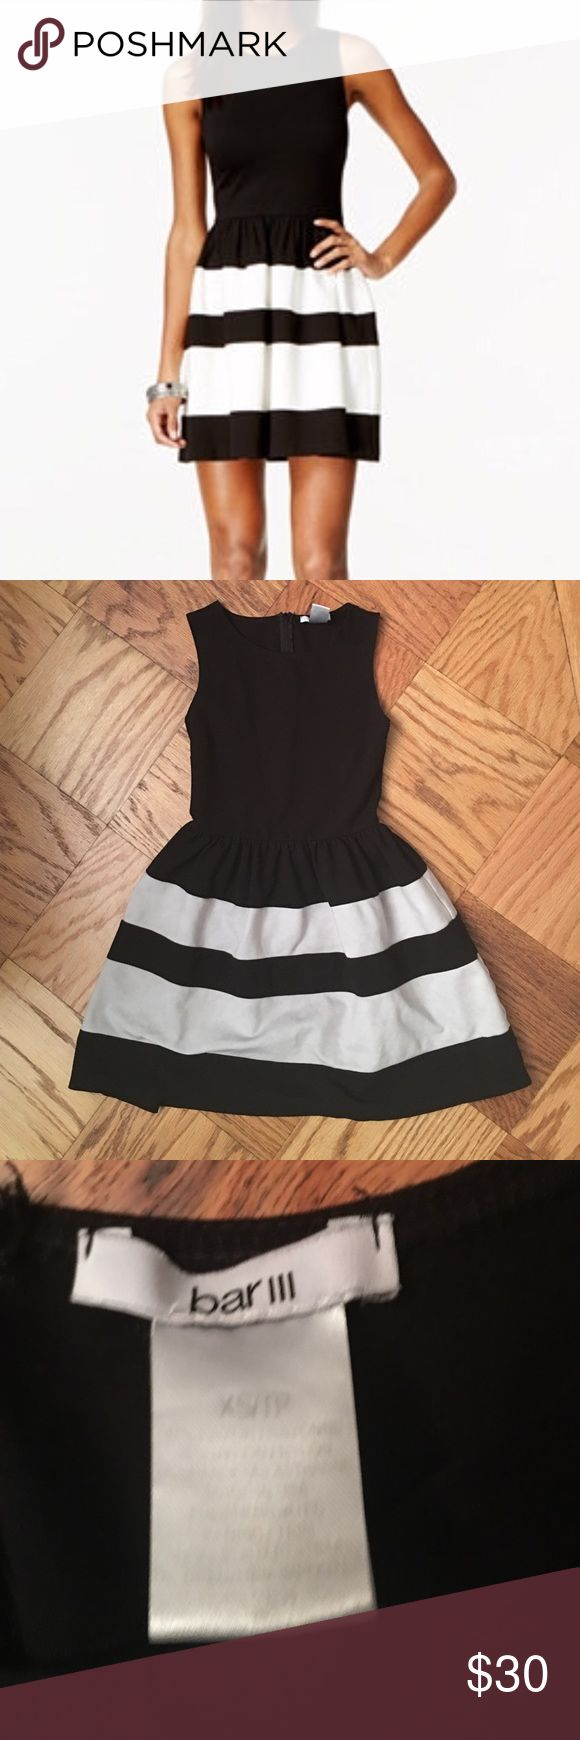 ✨Bar III Cocktail Dress!✨ ✨Bar III Cocktail dress! Worn once to a wedding. The white stripes have become a bit dull in color from the wash but could easily be brightened up with bleach or at the dry cleaners. No visible signs of wear. In great condition! Size XS✨ Bar III Dresses Midi